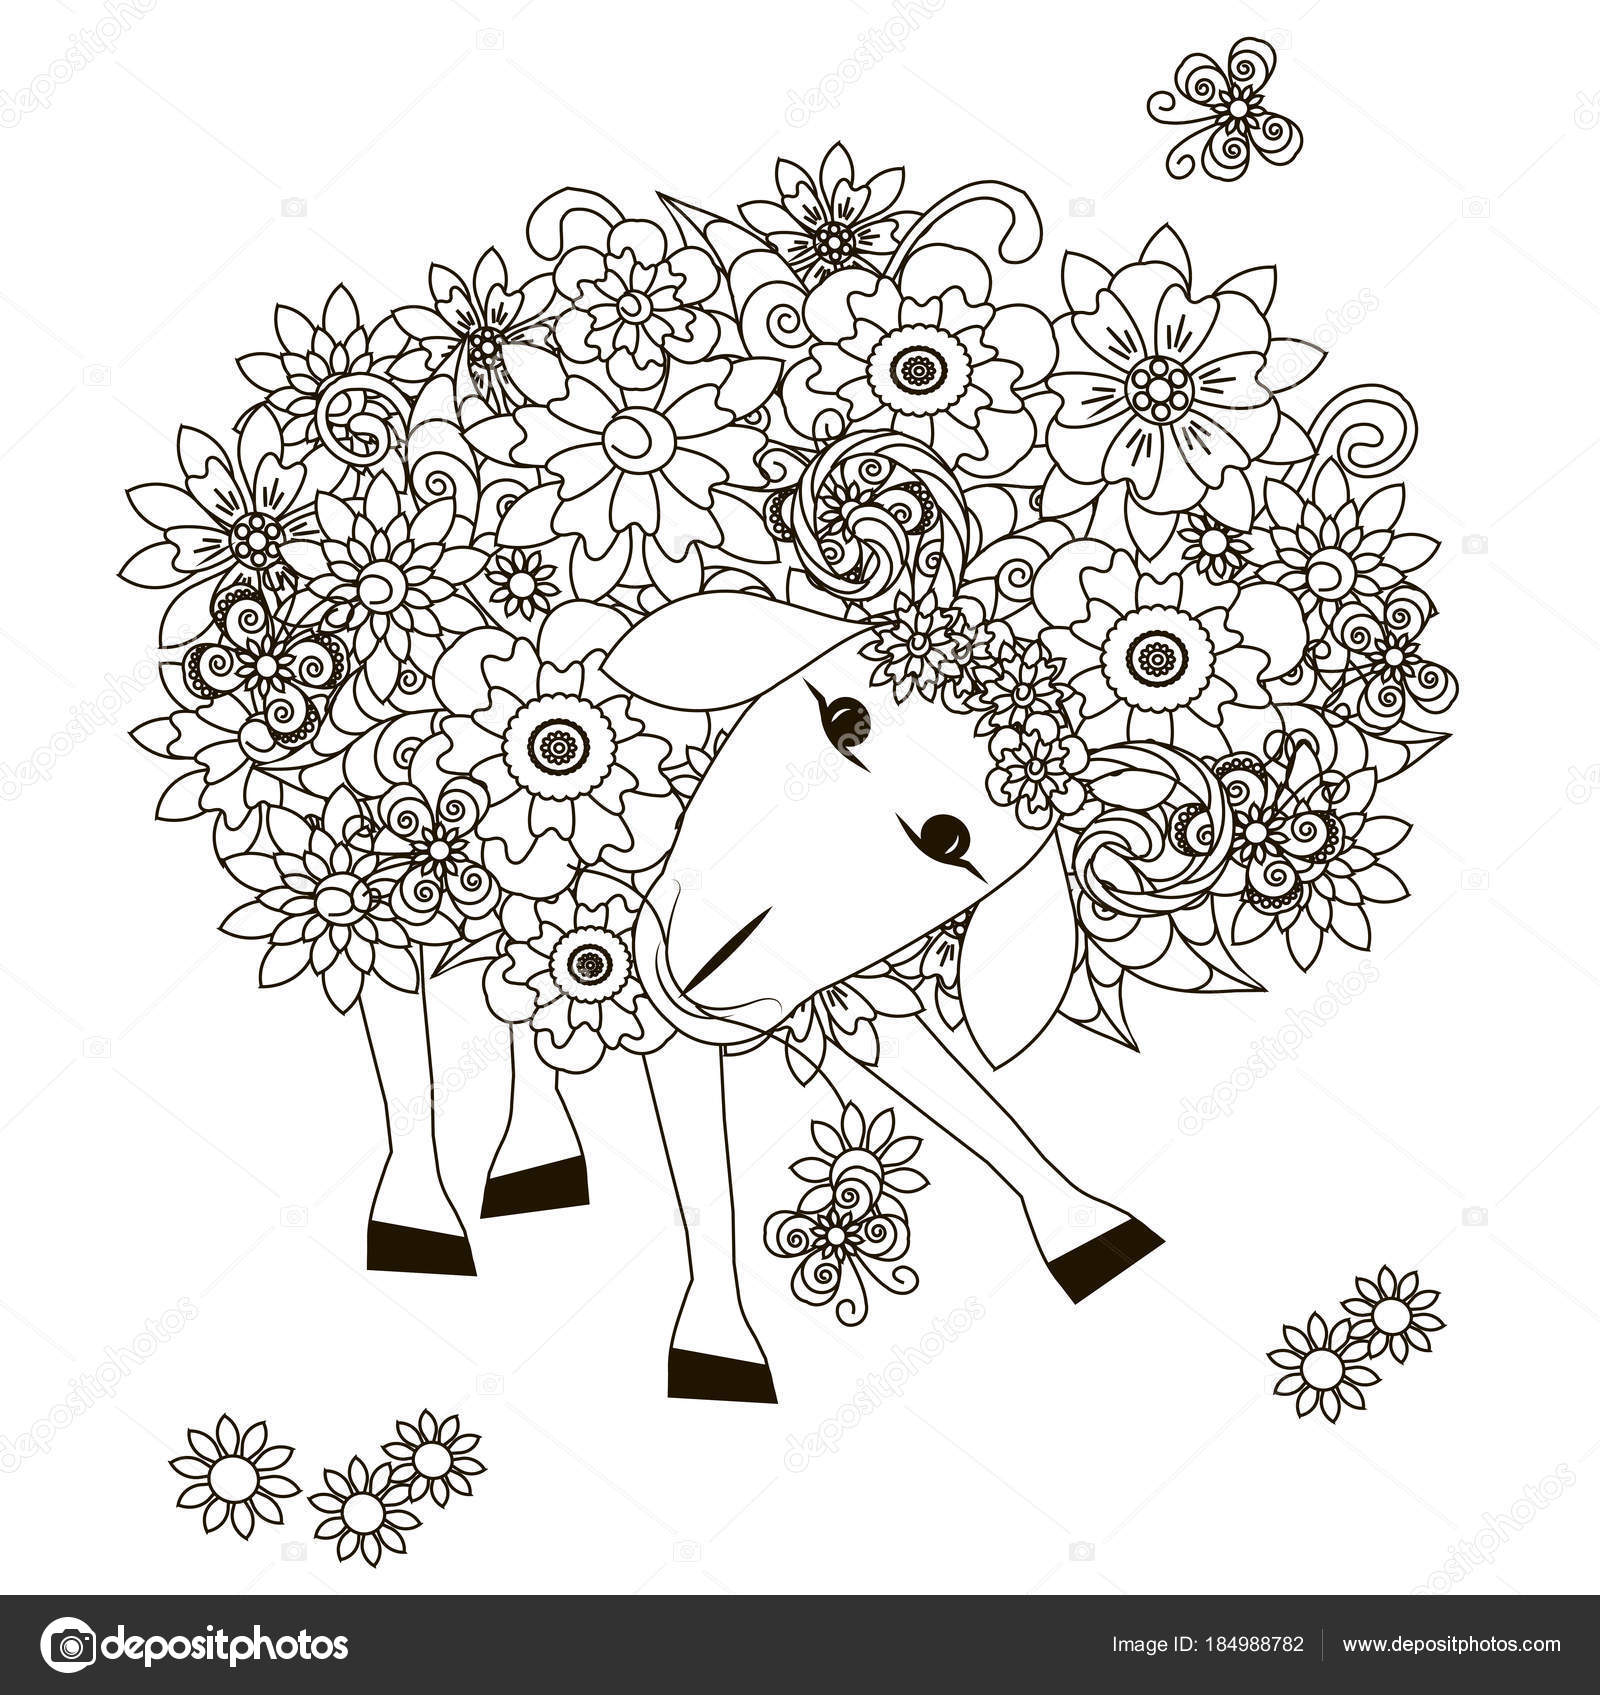 Flowers Sheep Monochrome Sketch Coloring Page Stress Stok Vector ...